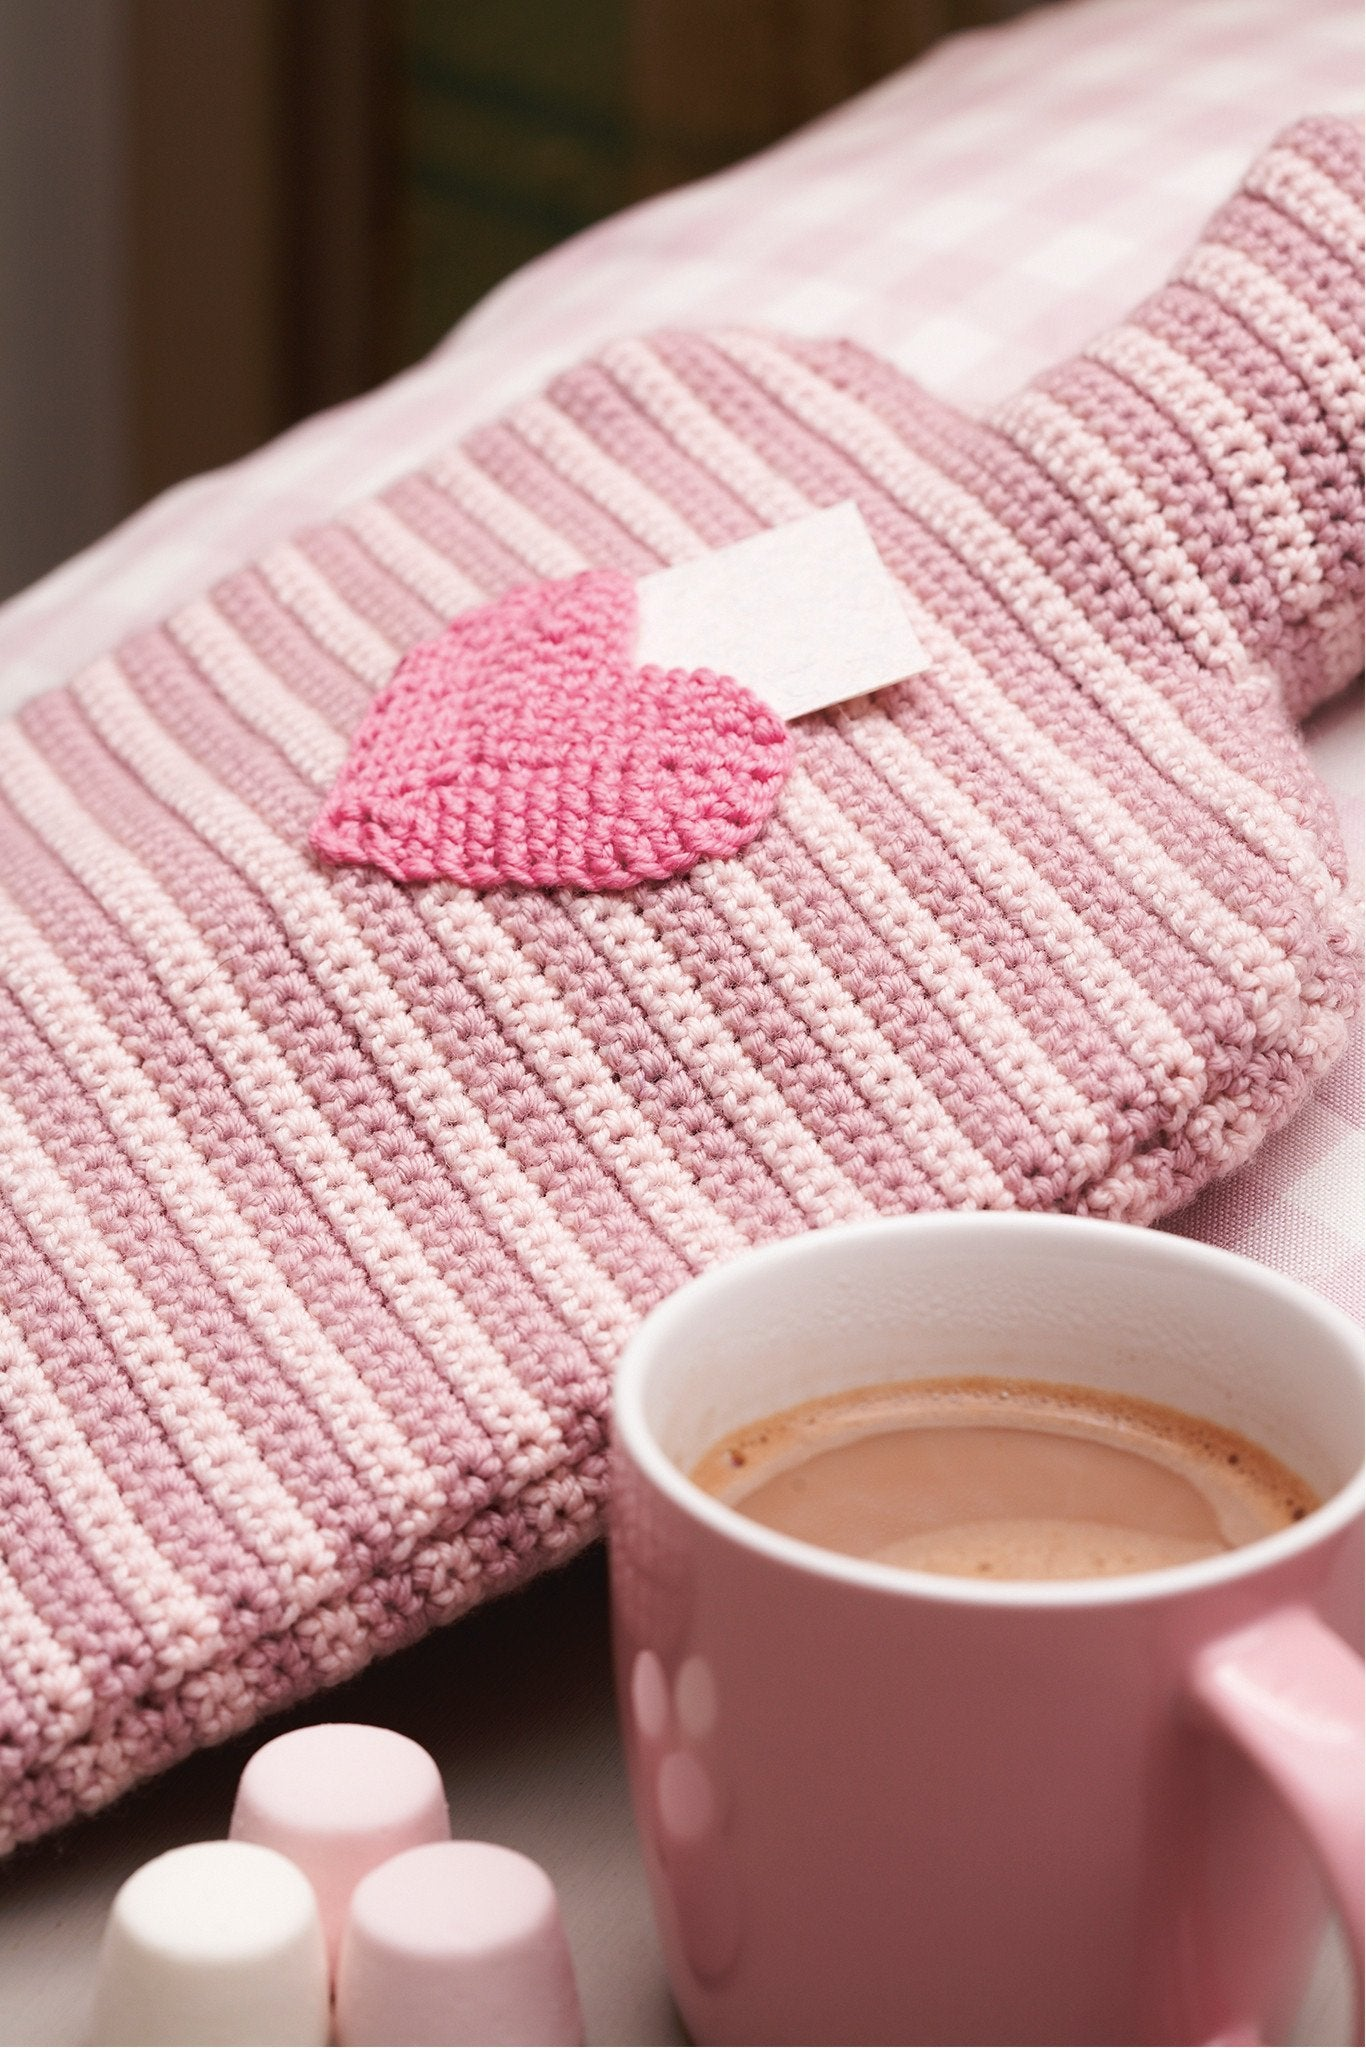 Hot Water Bottle Cover With Heart Pocket Crochet Pattern – The ...